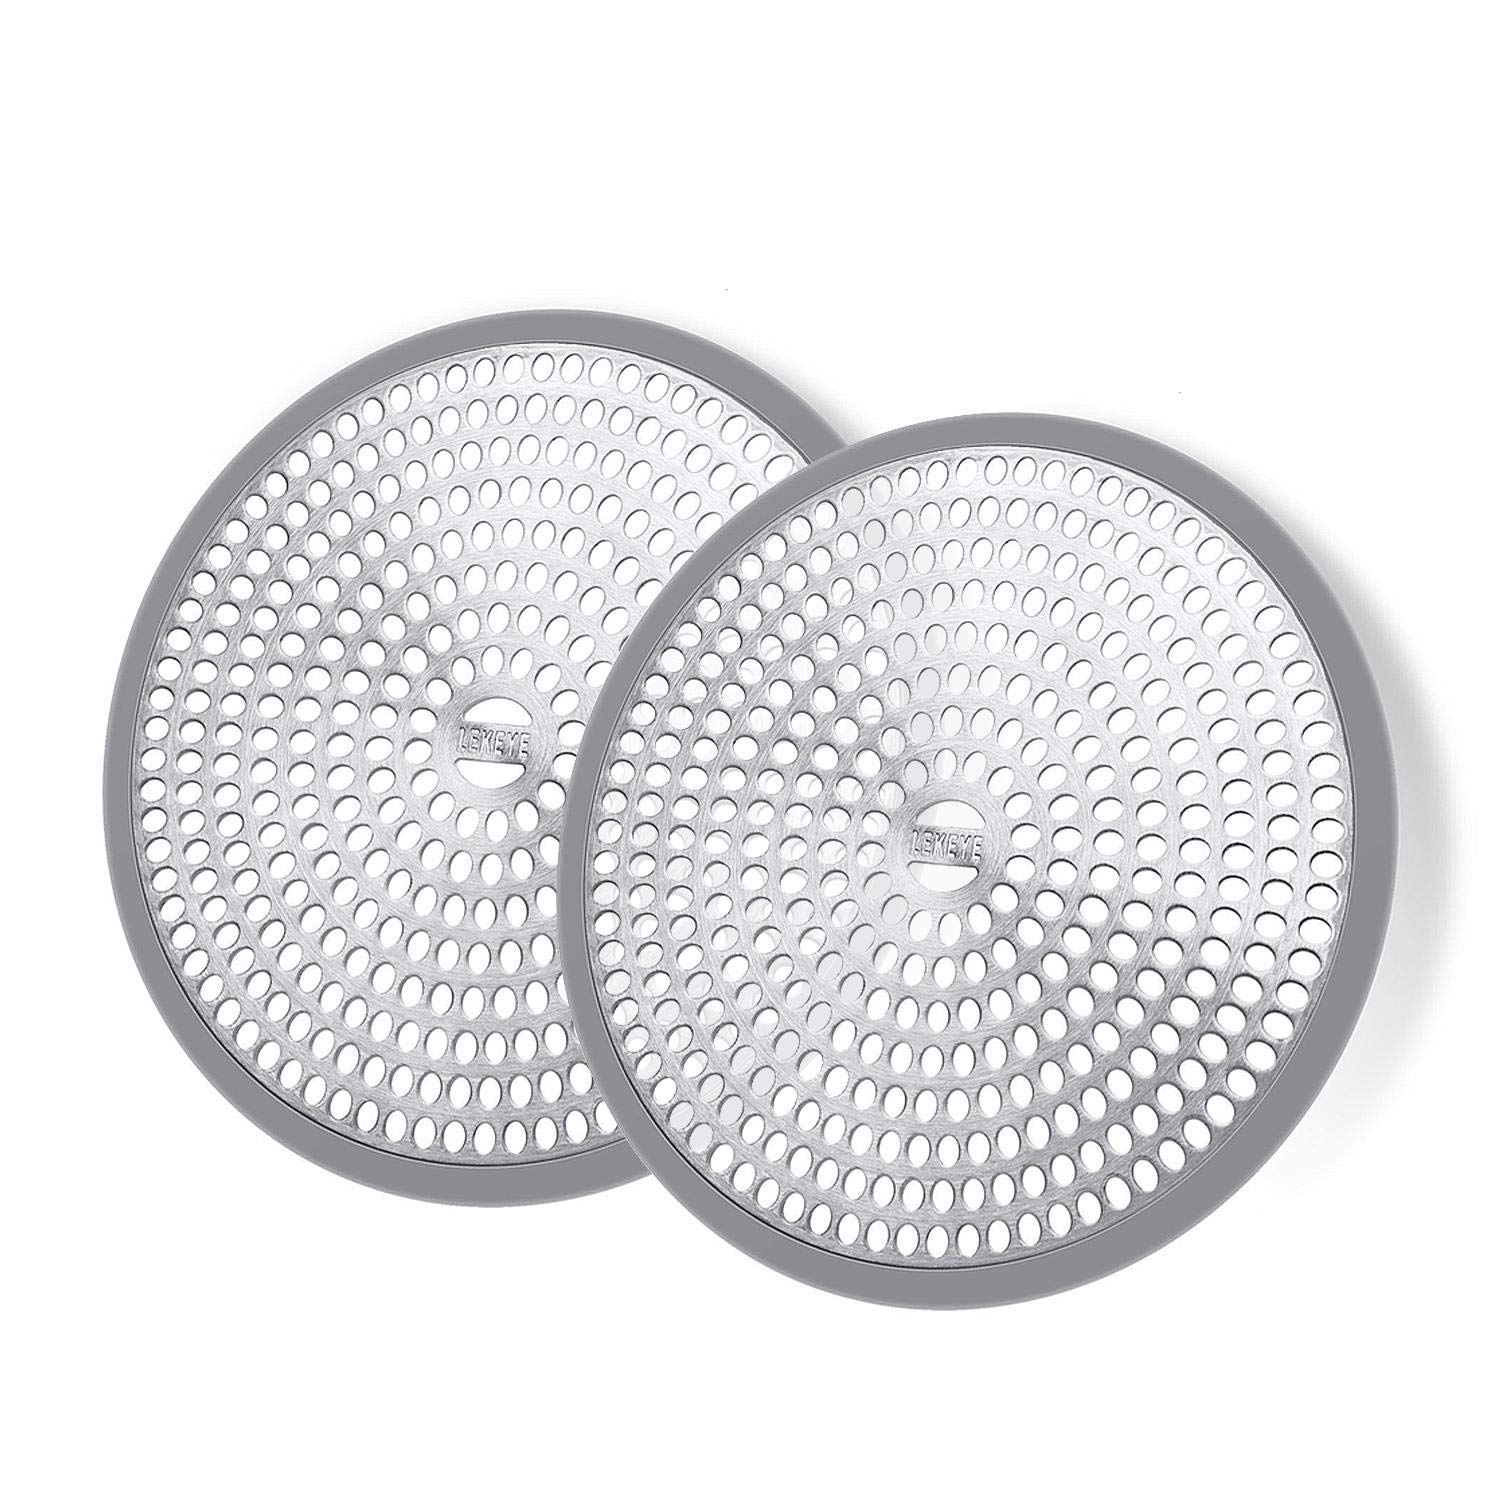 LEKEYE Shower Hair Catcher Drain Protector Strainer-Steel & Silicone 2 Pack…